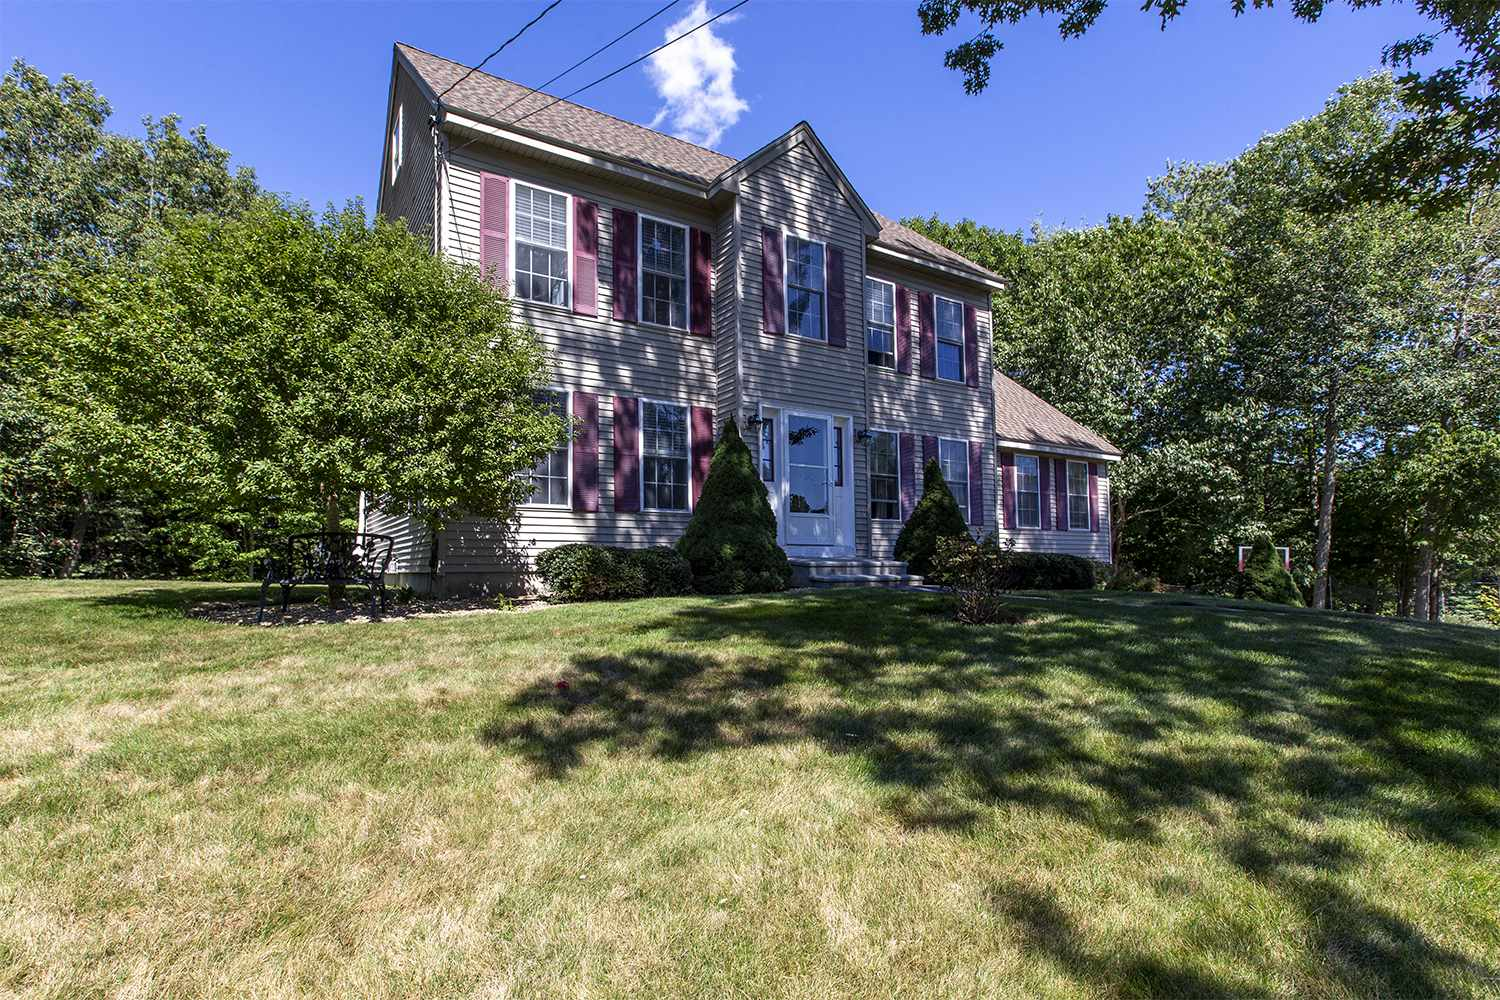 Photo of 2 Winslow Drive Newmarket NH 03857